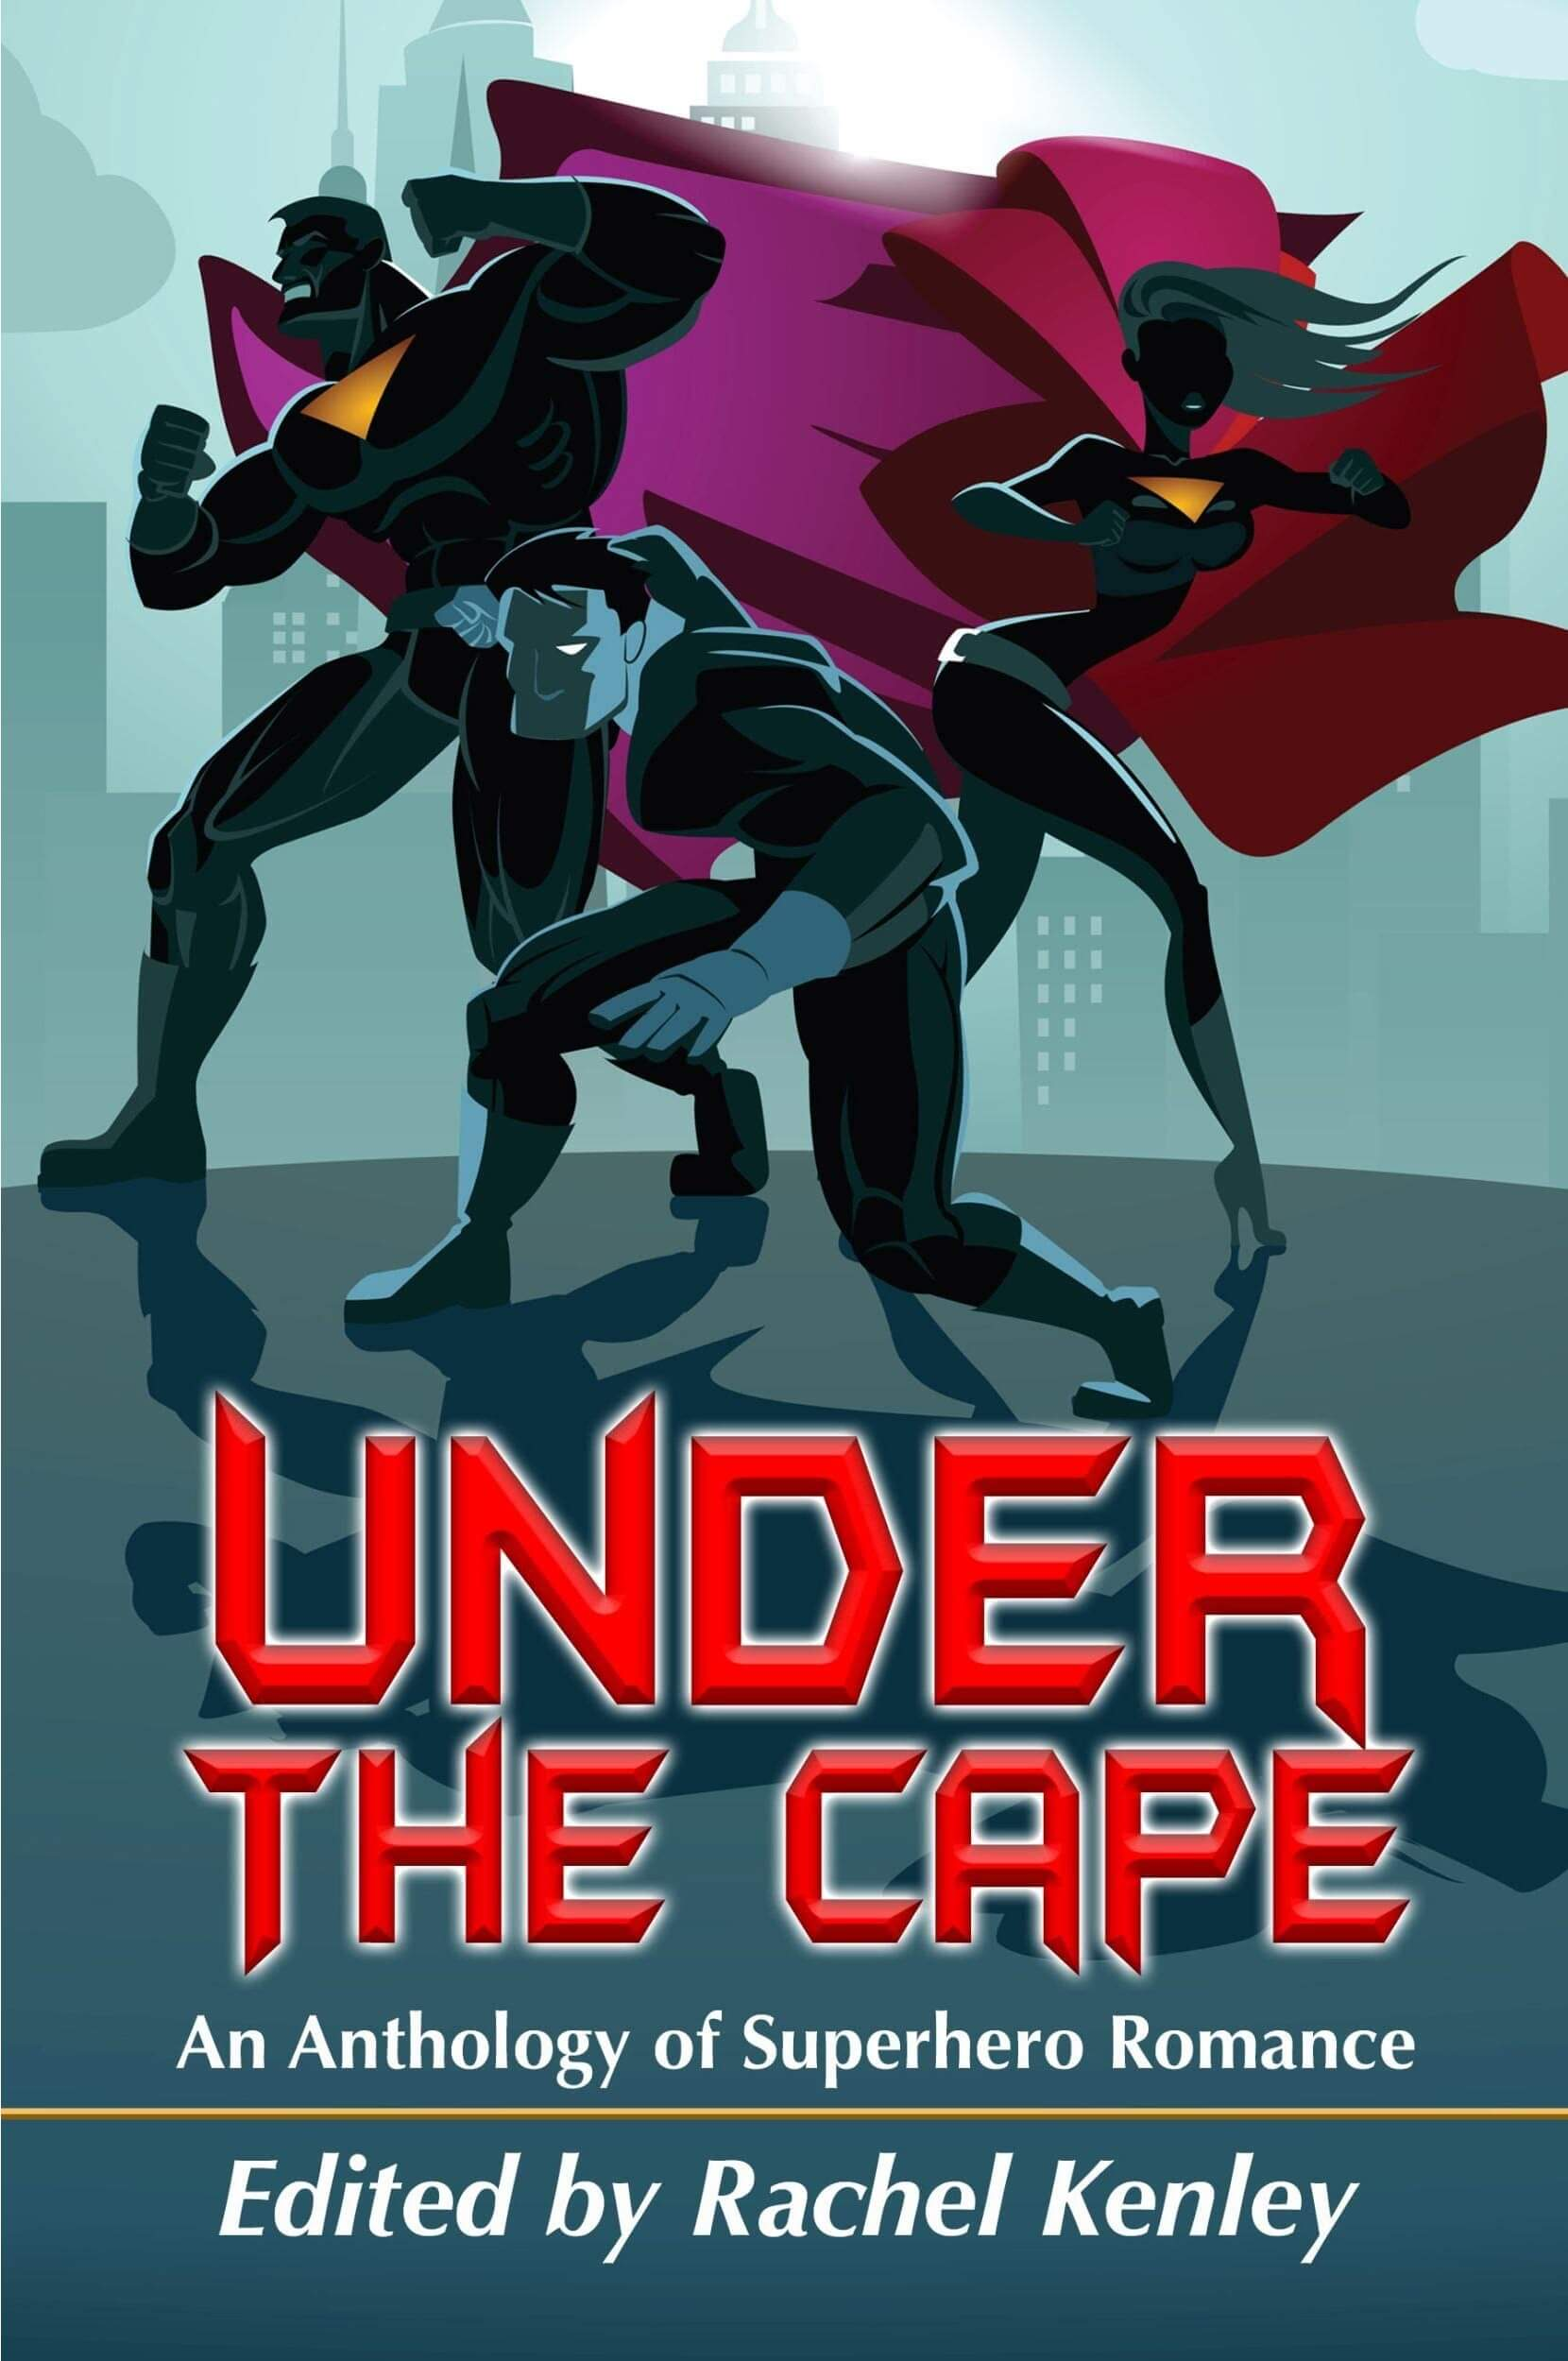 Under the Cape: An Anthology of Superhero Romance Cover. Riverdale Avenue Books.